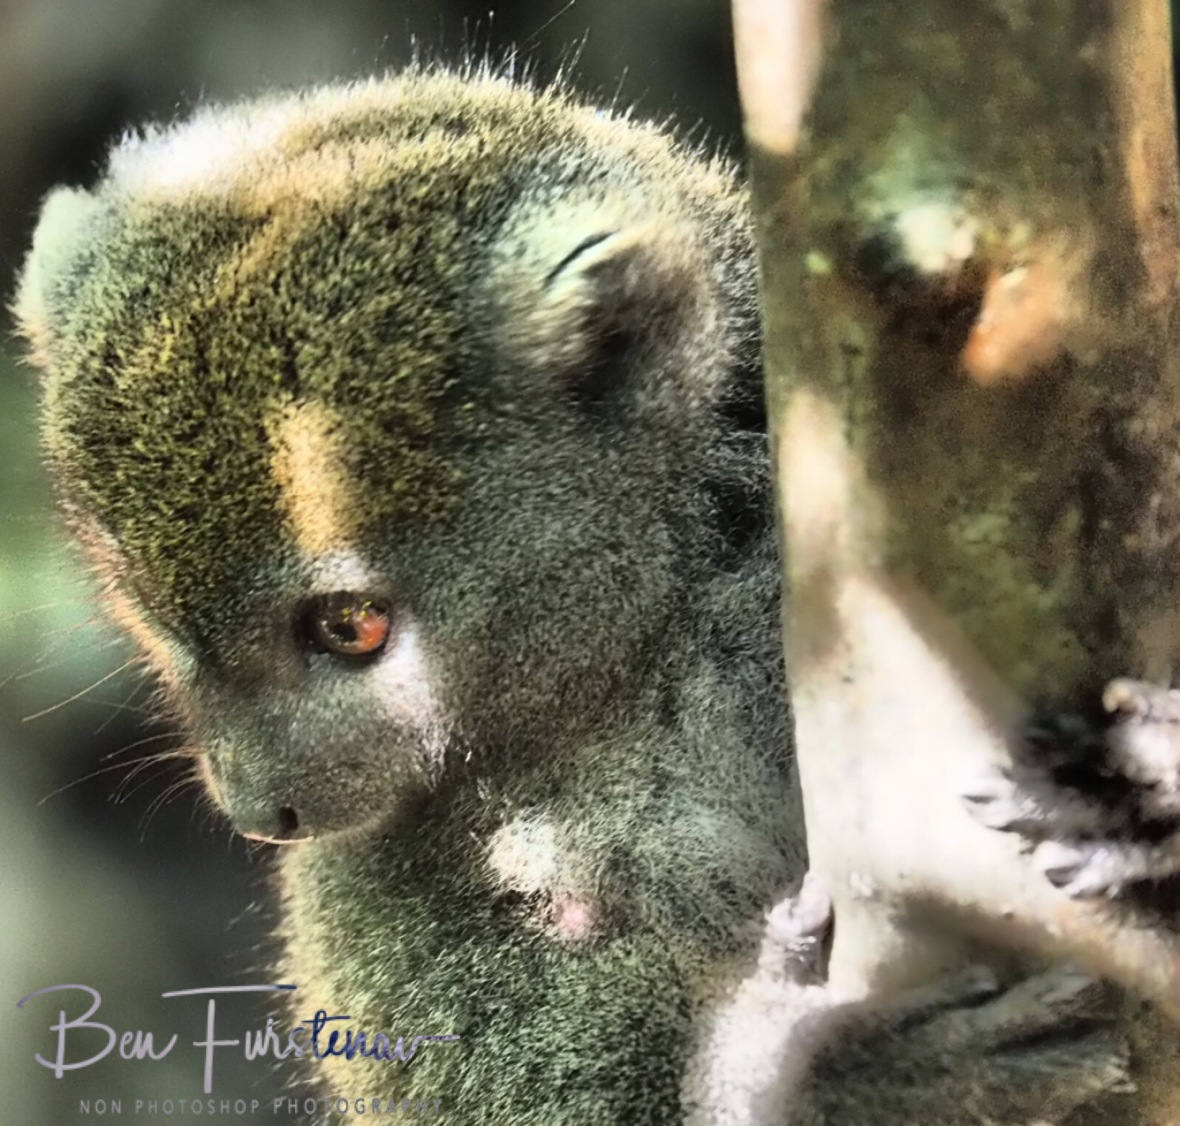 Bamboo Lemurs know what they want